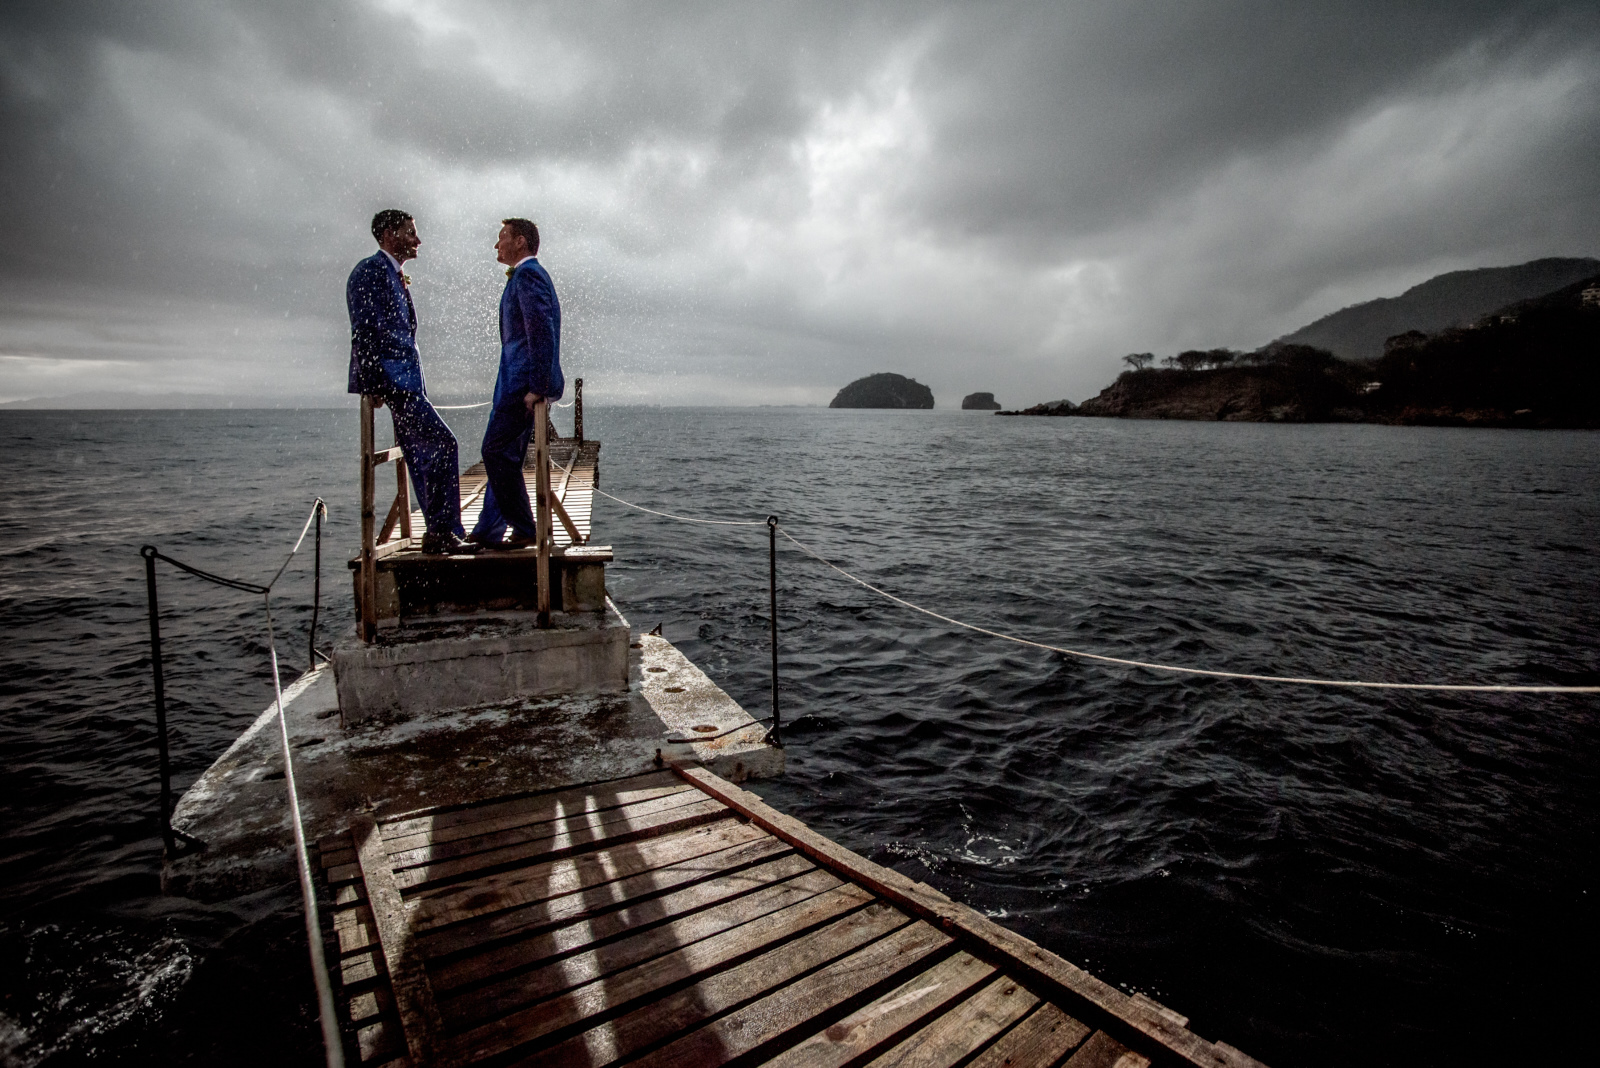 Wedding photographer in Puerto Vallarta, Sayulita, Punta Mita, Nayarit, Mexico - LGBT same sex mariage - Couple under the rain